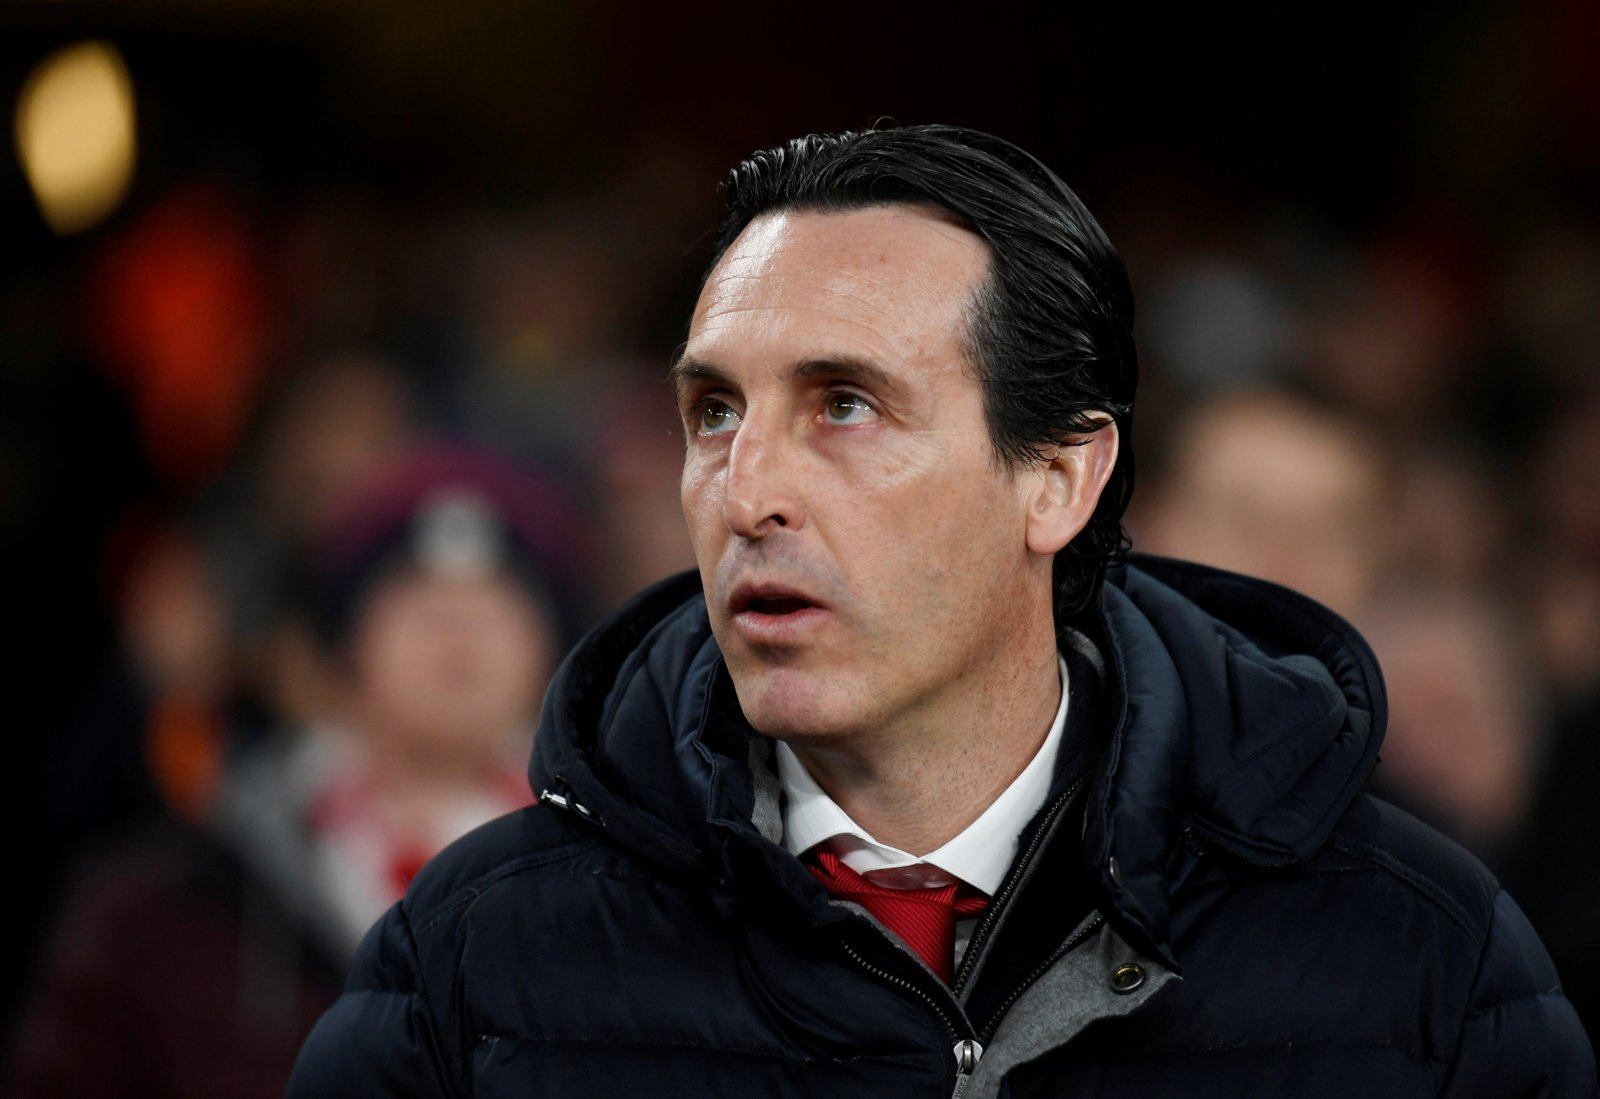 Arsenal: Fans call for Unai Emery to leave after resilient press conference